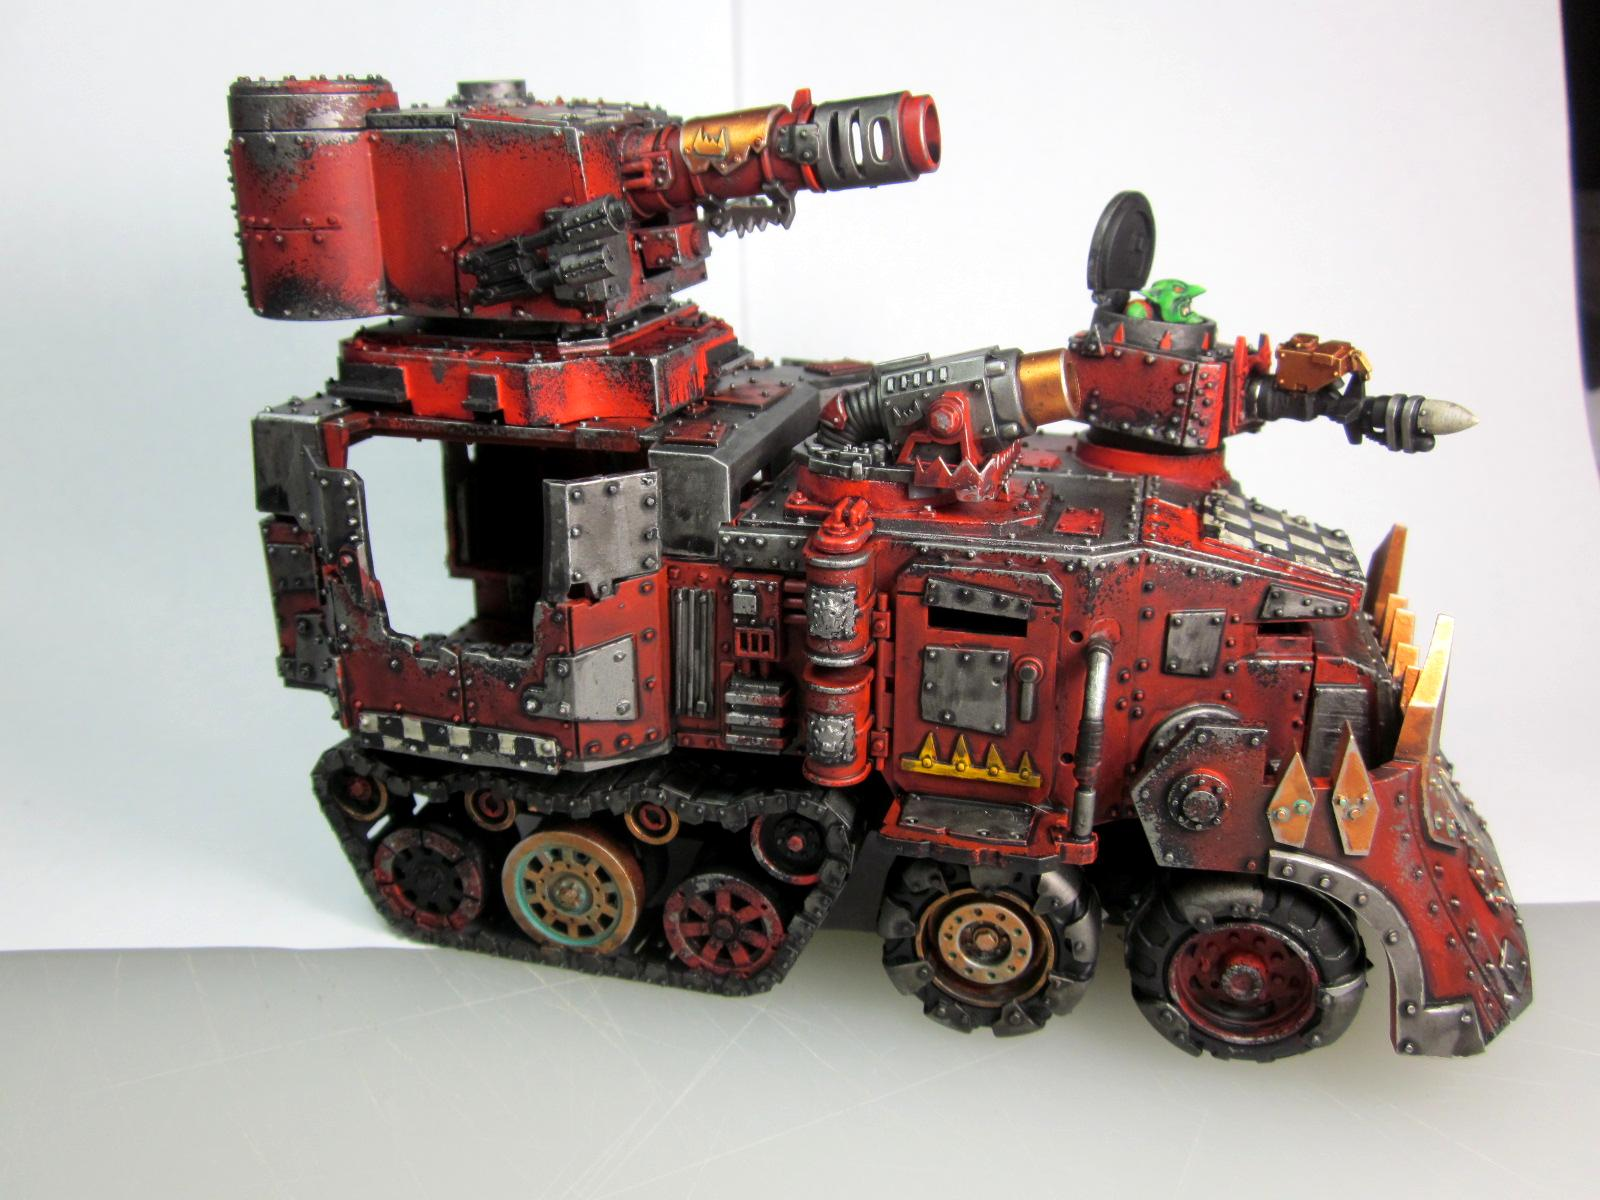 Battlewagon, Cult Of Speed, Freaks, Freeks, Orks, Speed, Speed Freeks, Wagon